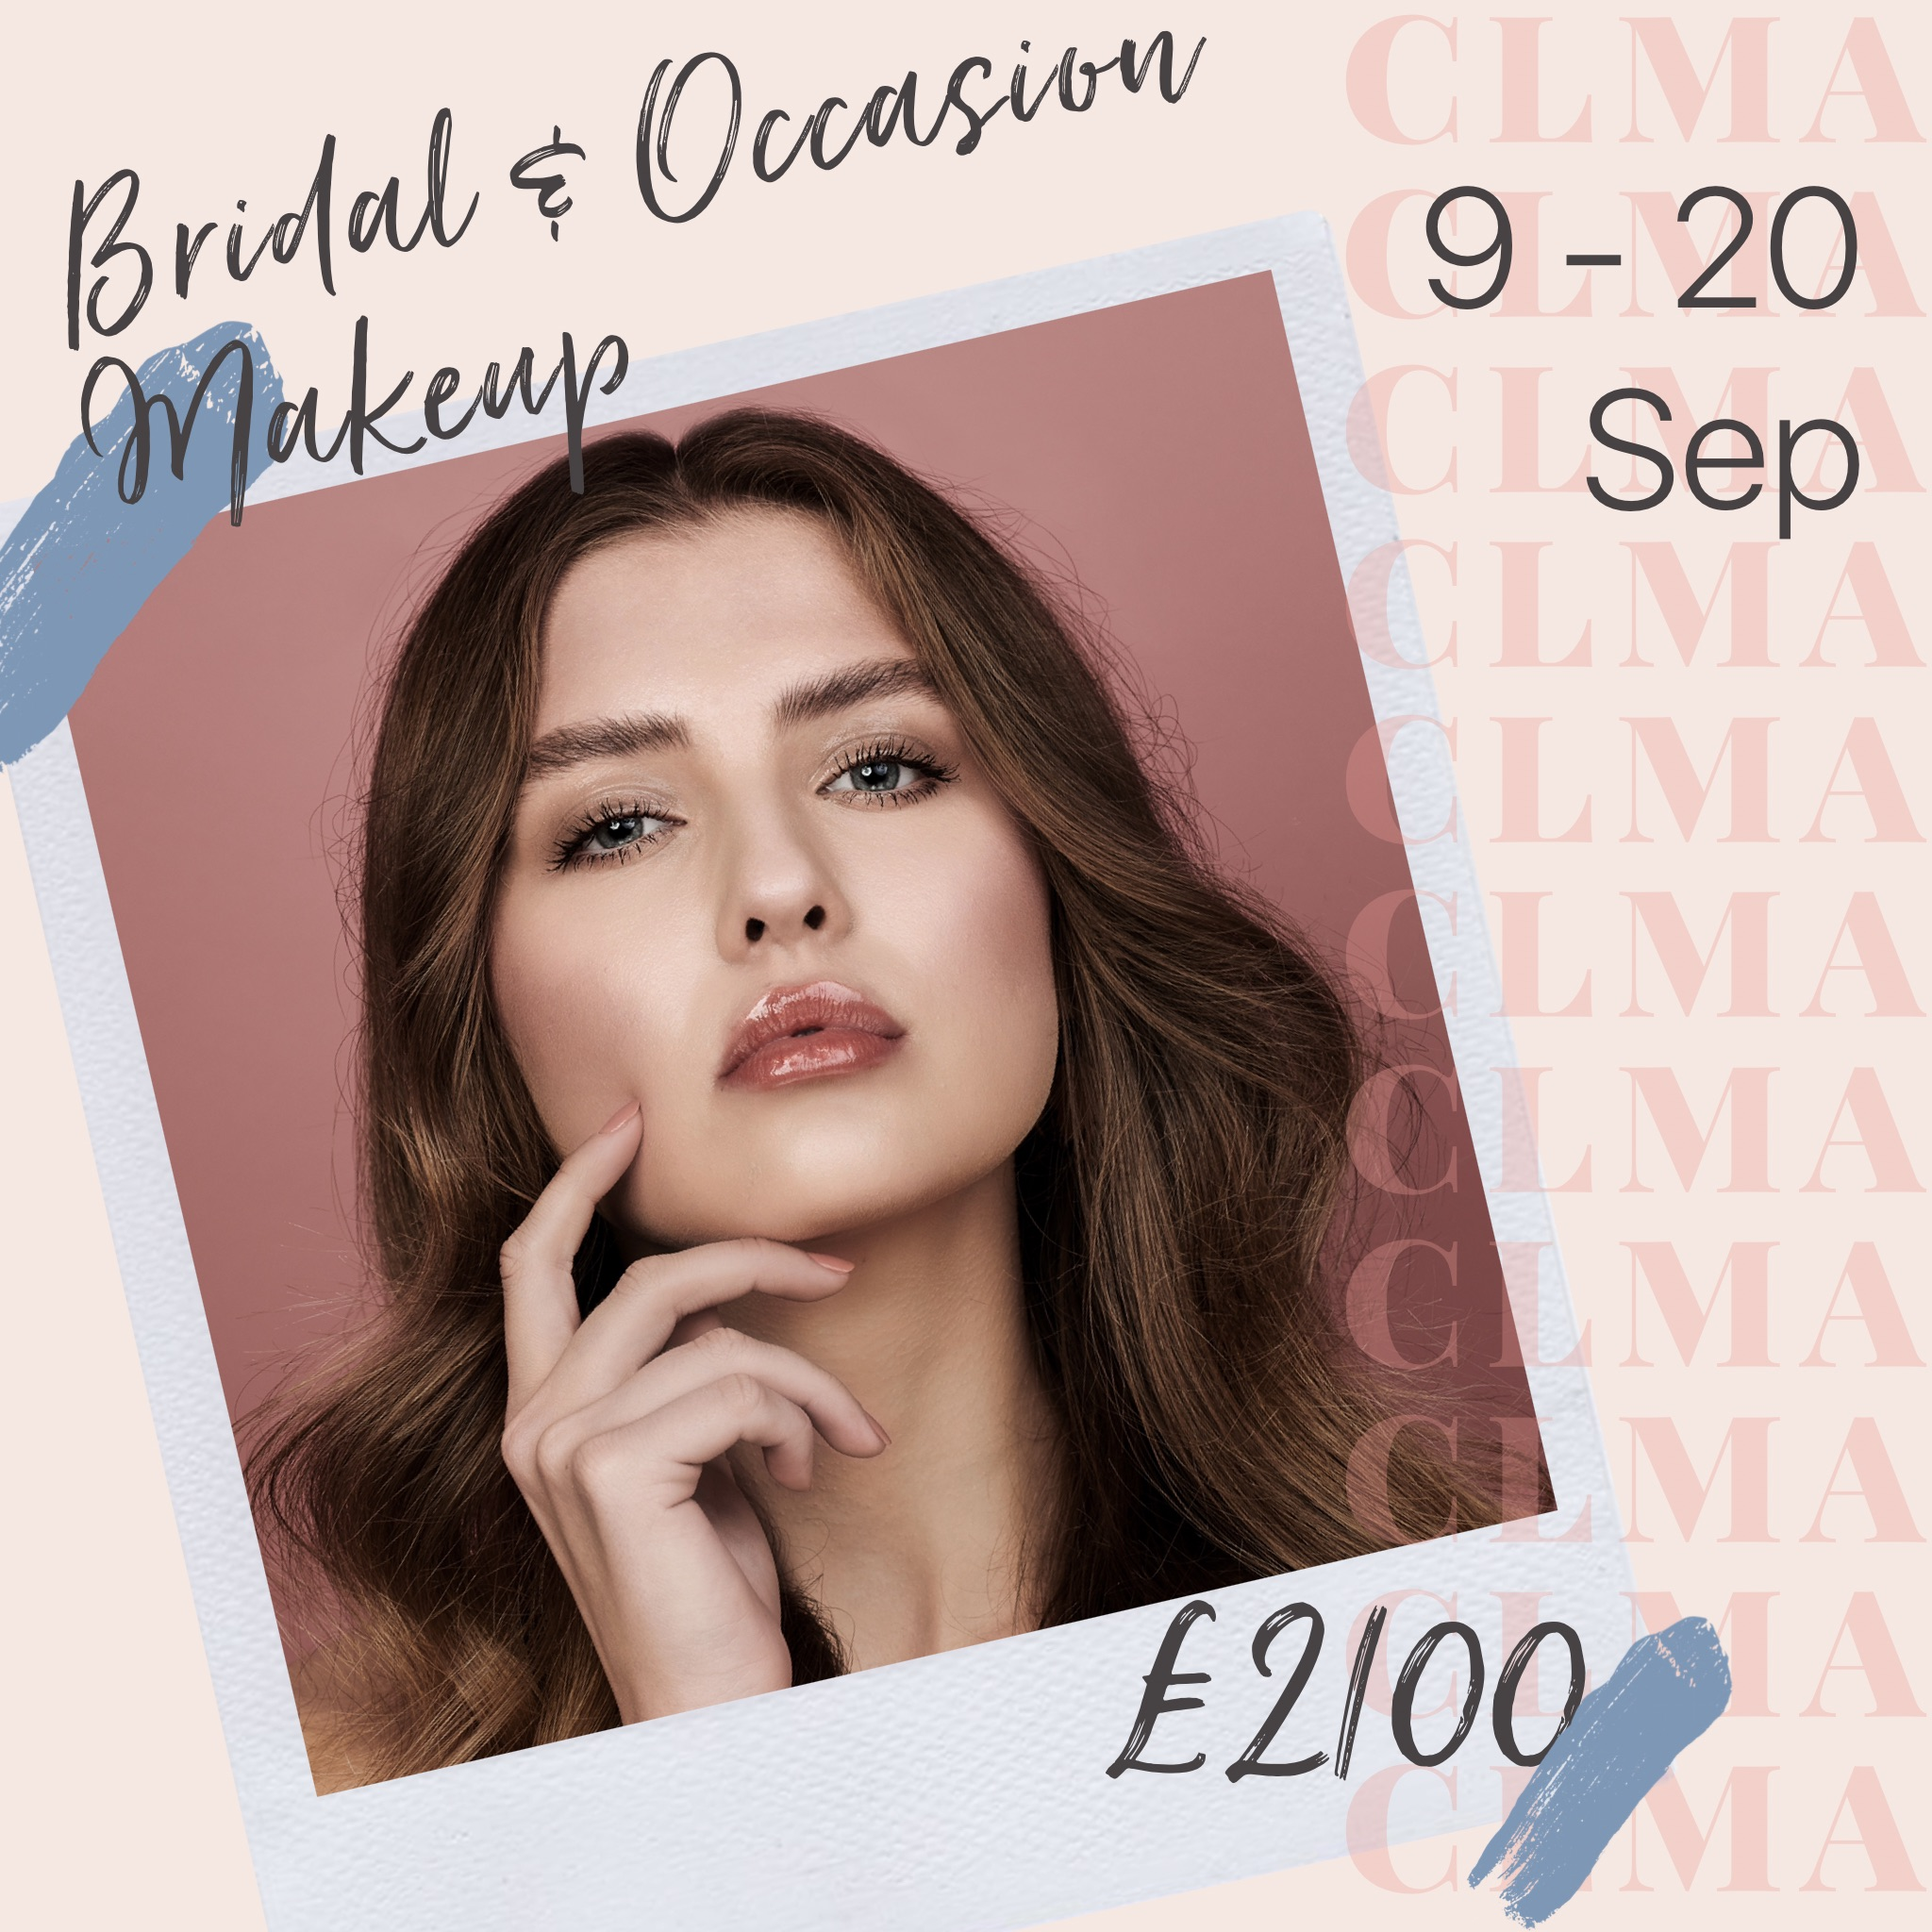 Bridal and Occasion Makeup Cassie Lomas